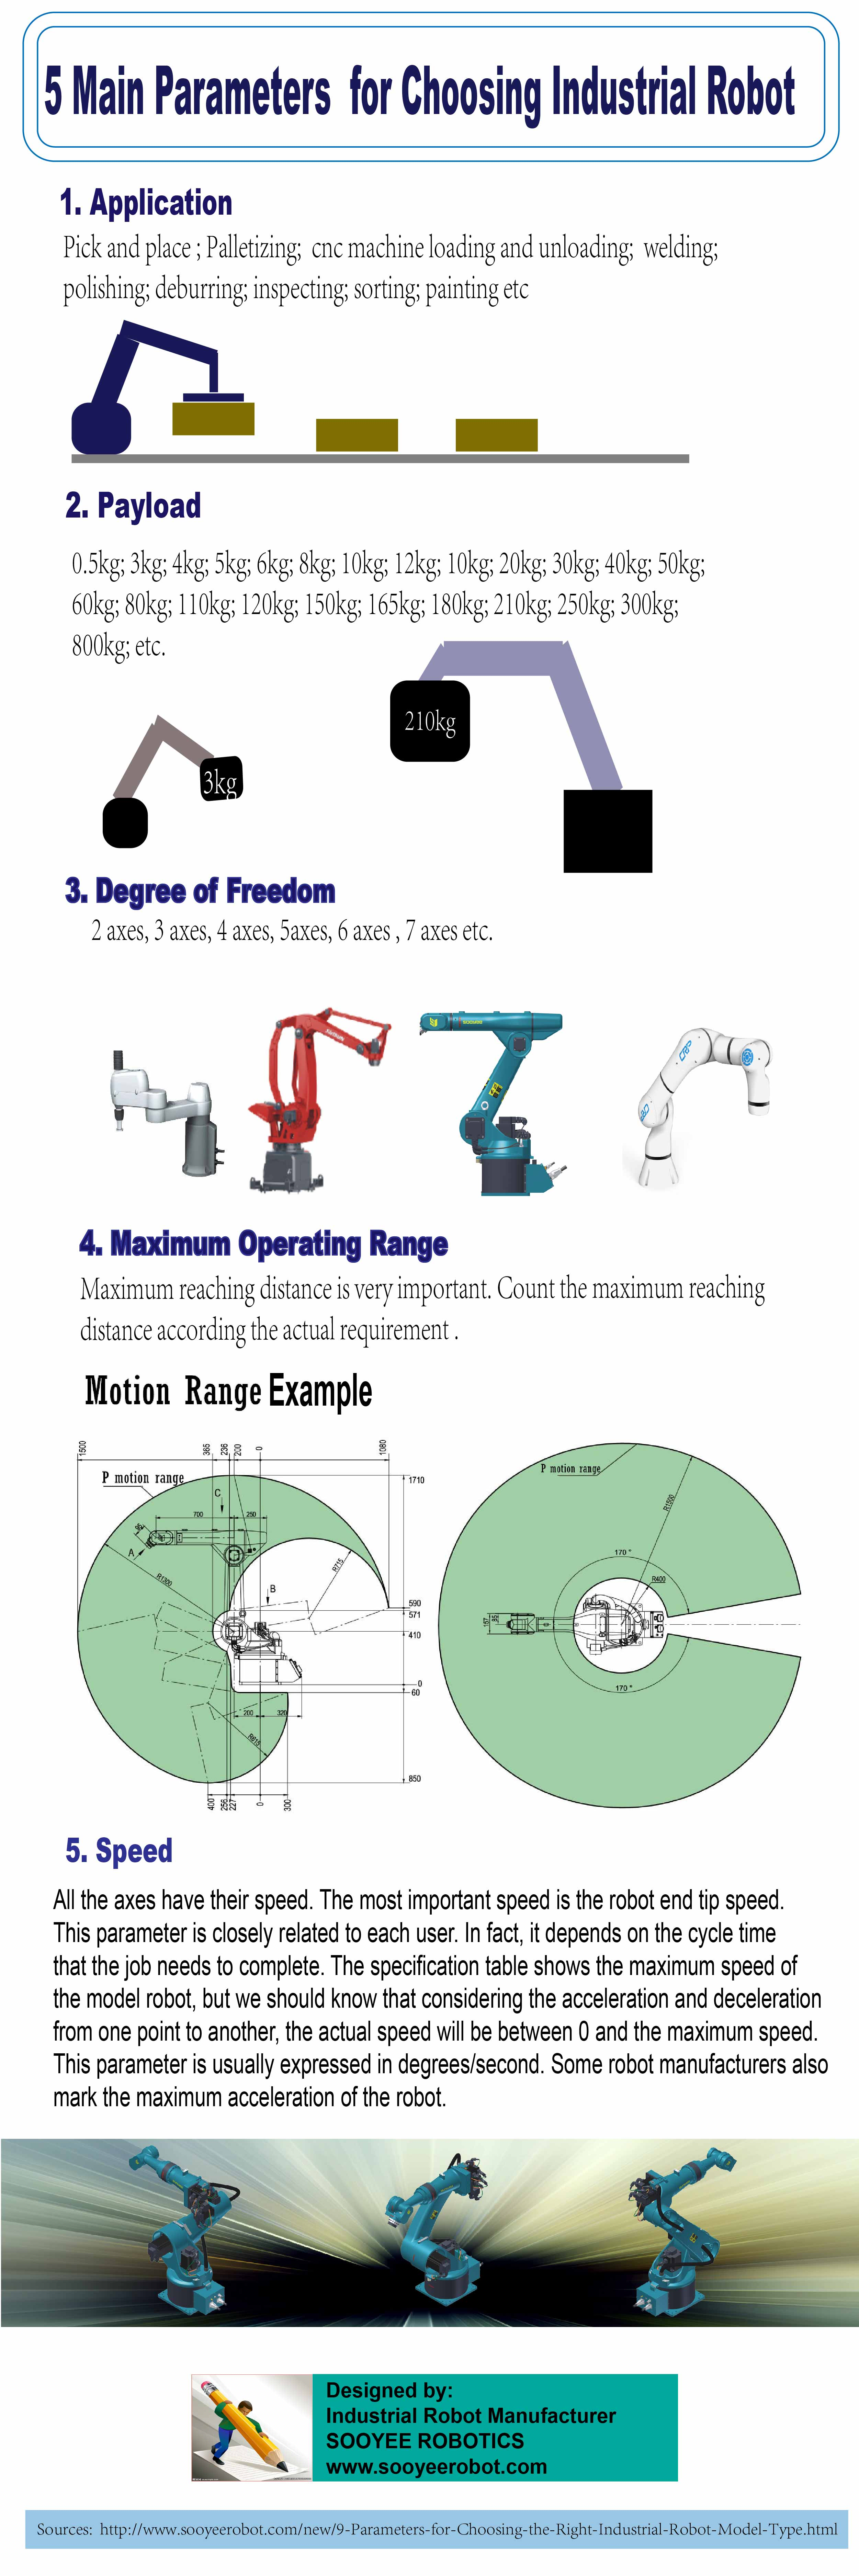 How To Buy Industrial Robot Arms? - 5 Things You Must Know.